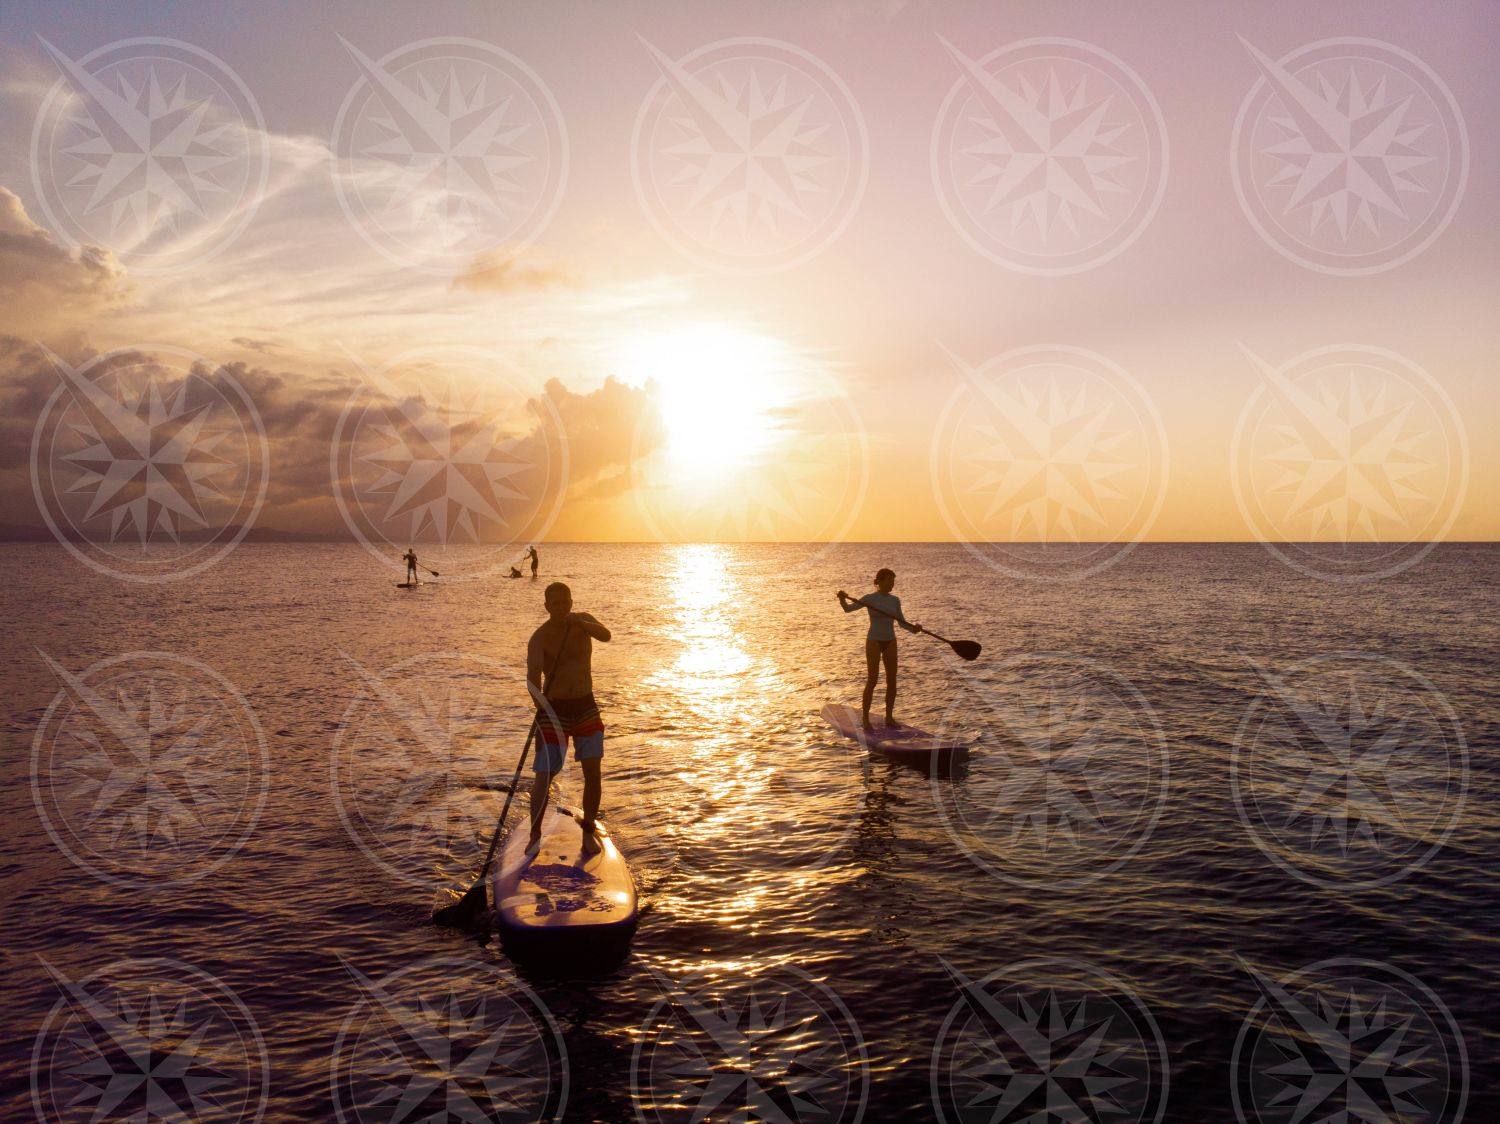 Stand up paddle boarding at sunset